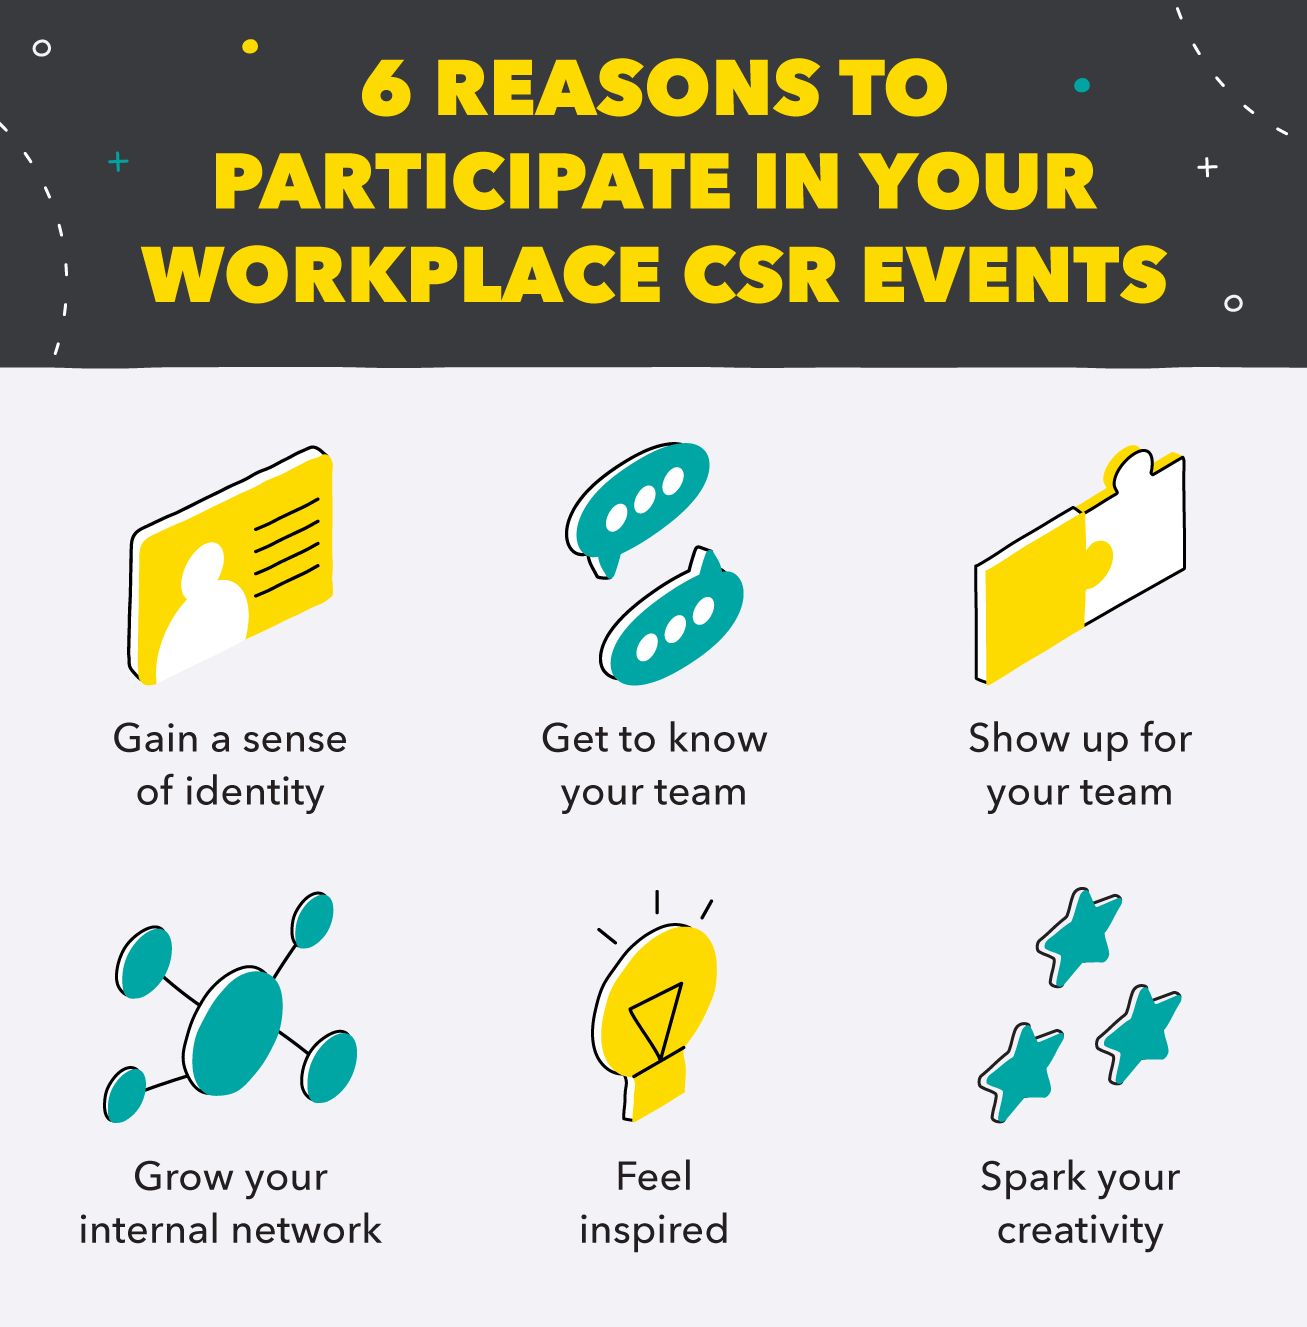 6 Reasons to Participate in CSR